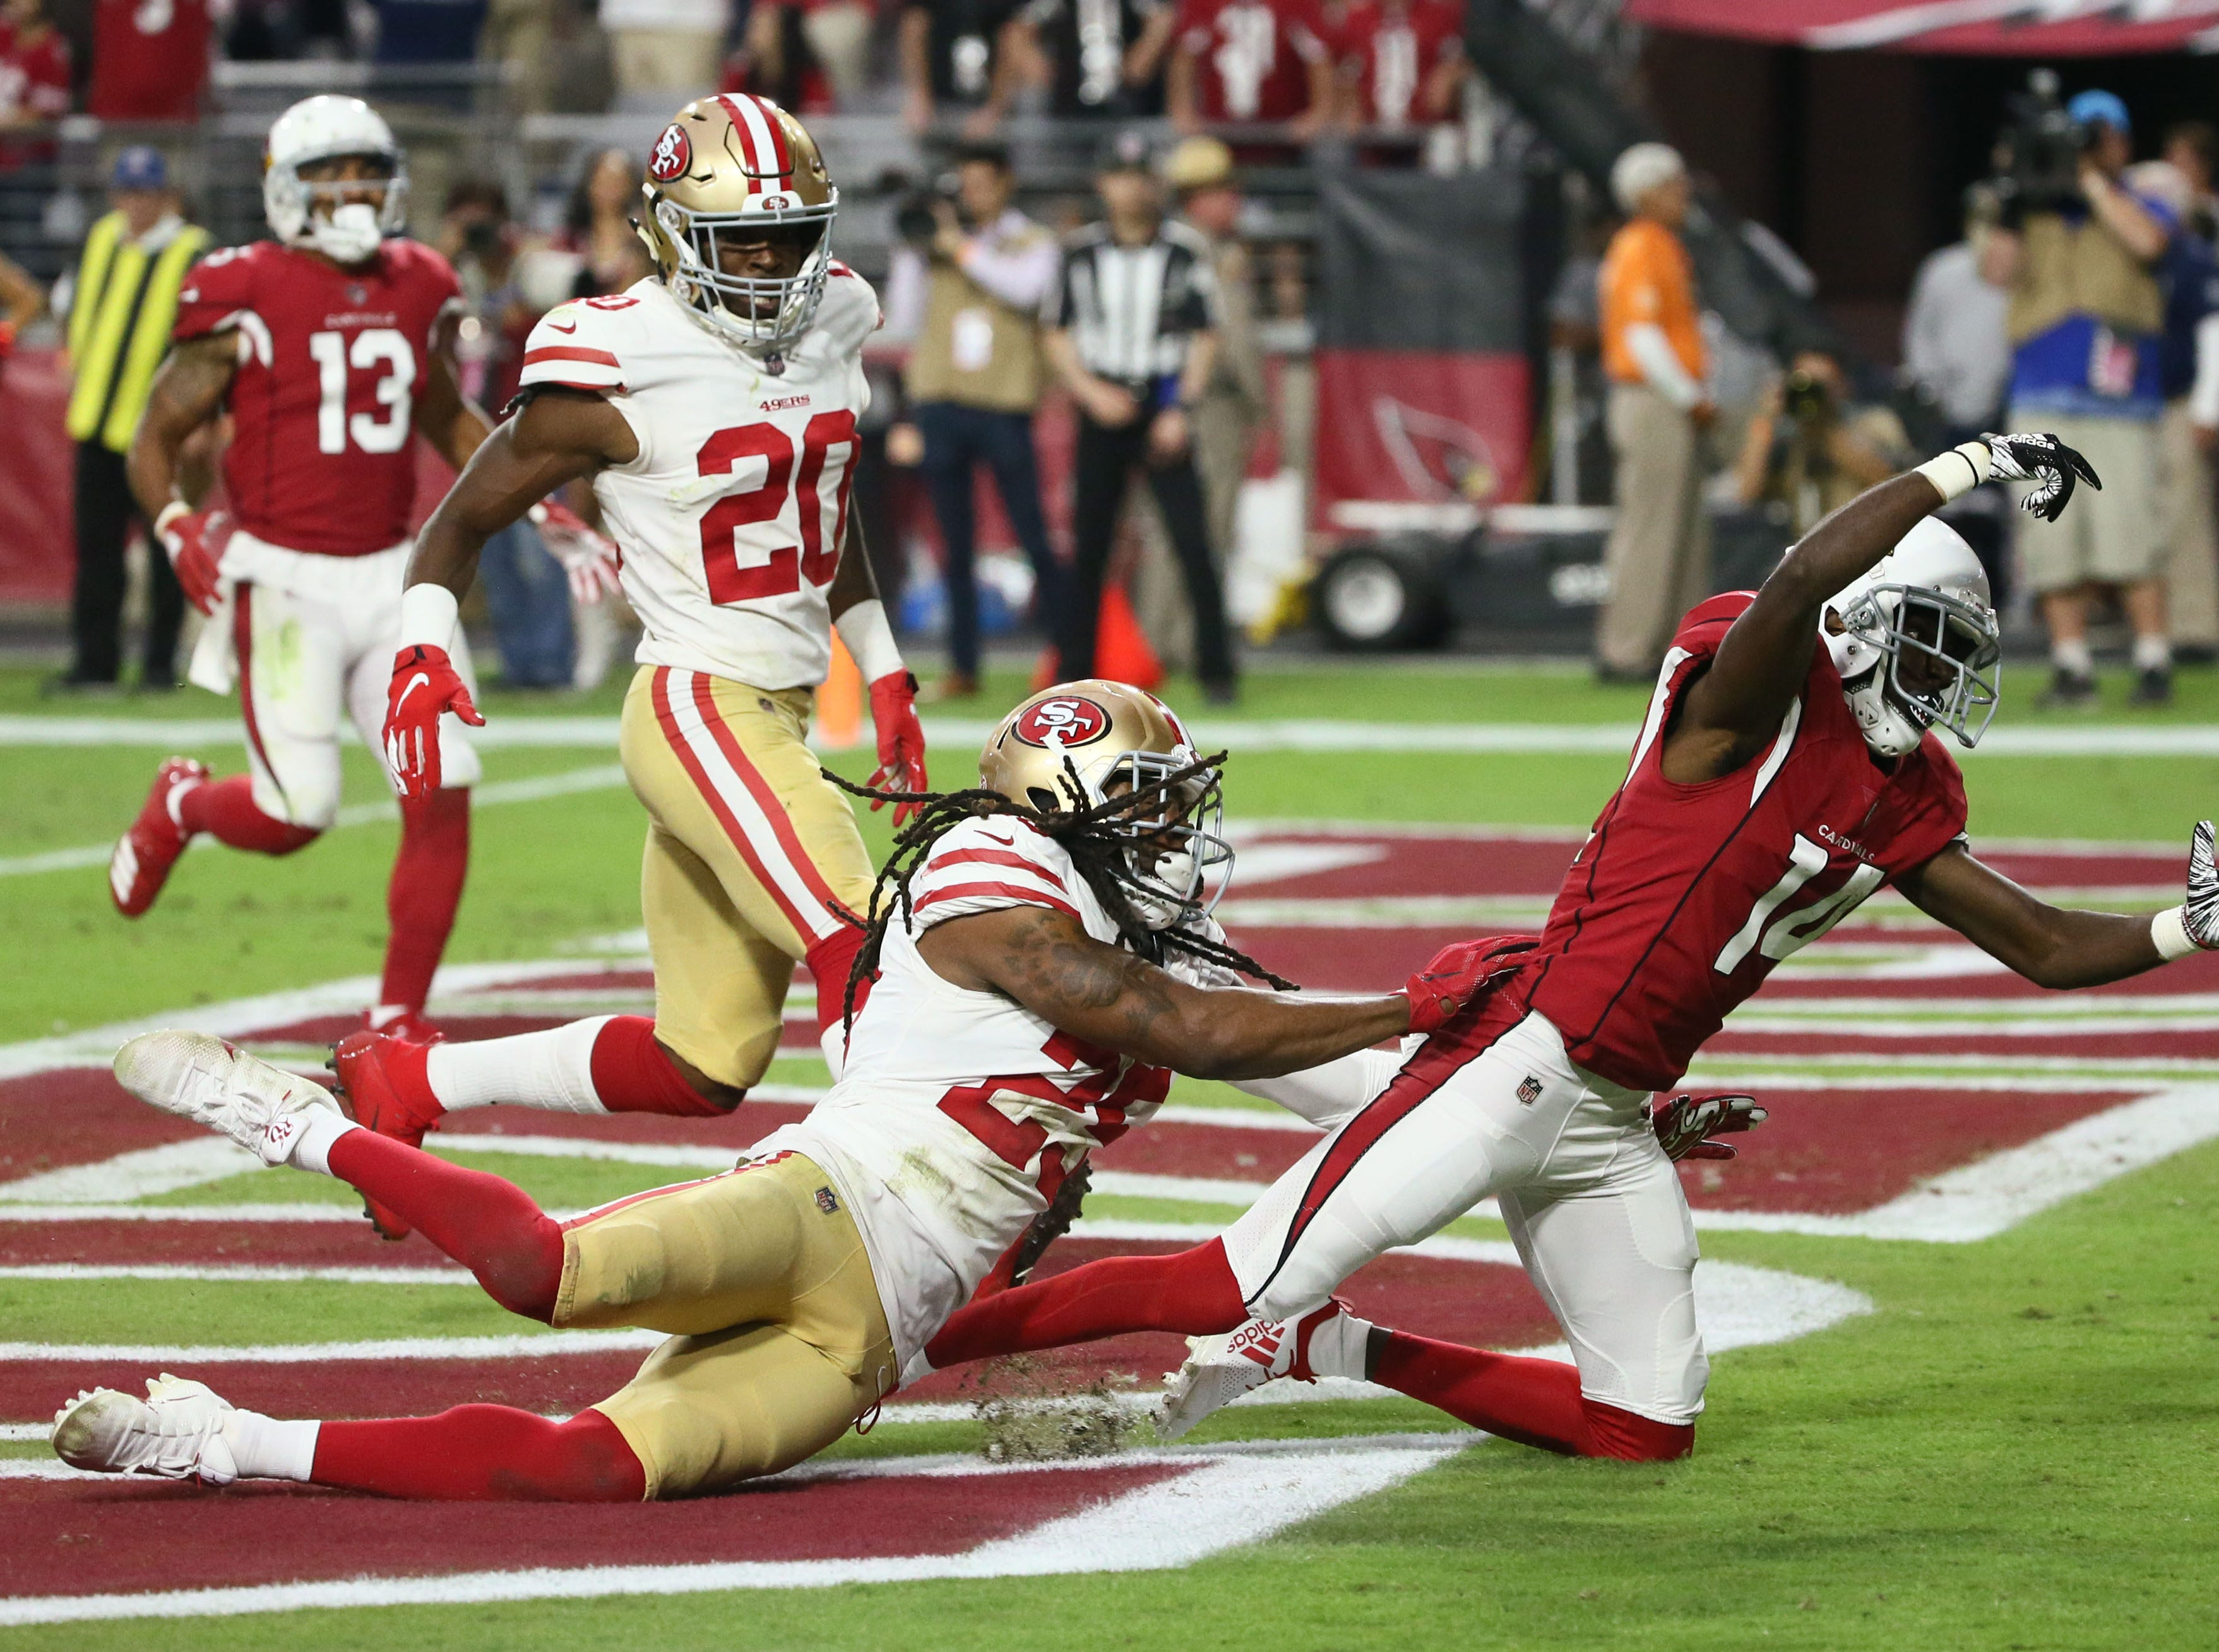 Arizona Cardinals wide receiver J.J. Nelson misses a touchdown catch against the San Francisco 49ers in the second half during a game on Oct. 28 at State Farm Stadium.